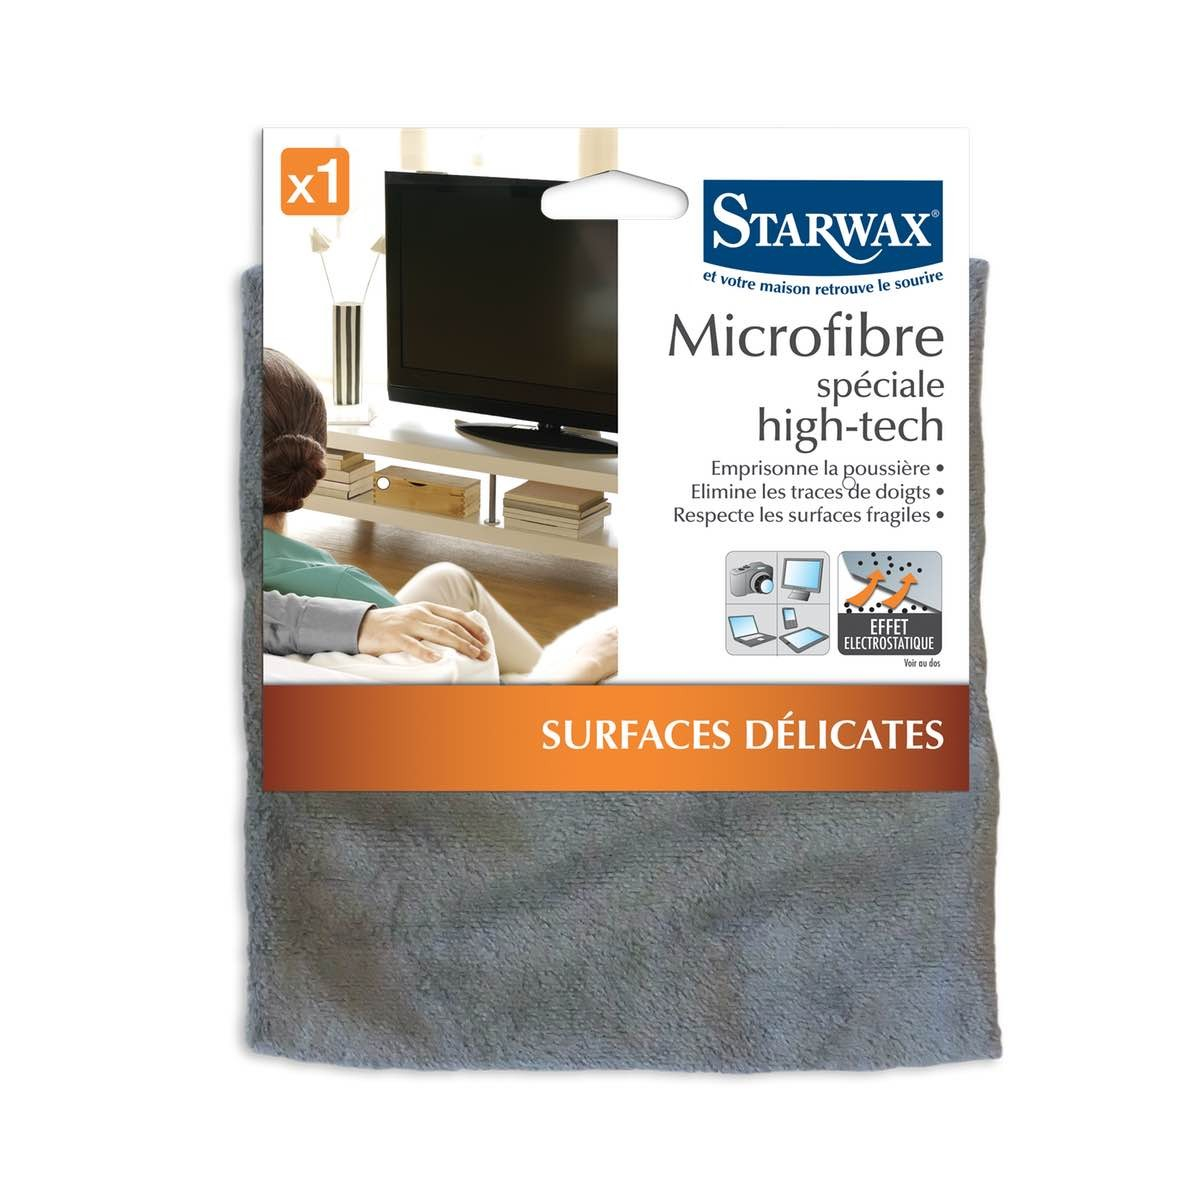 microfibre high-tech Starwax